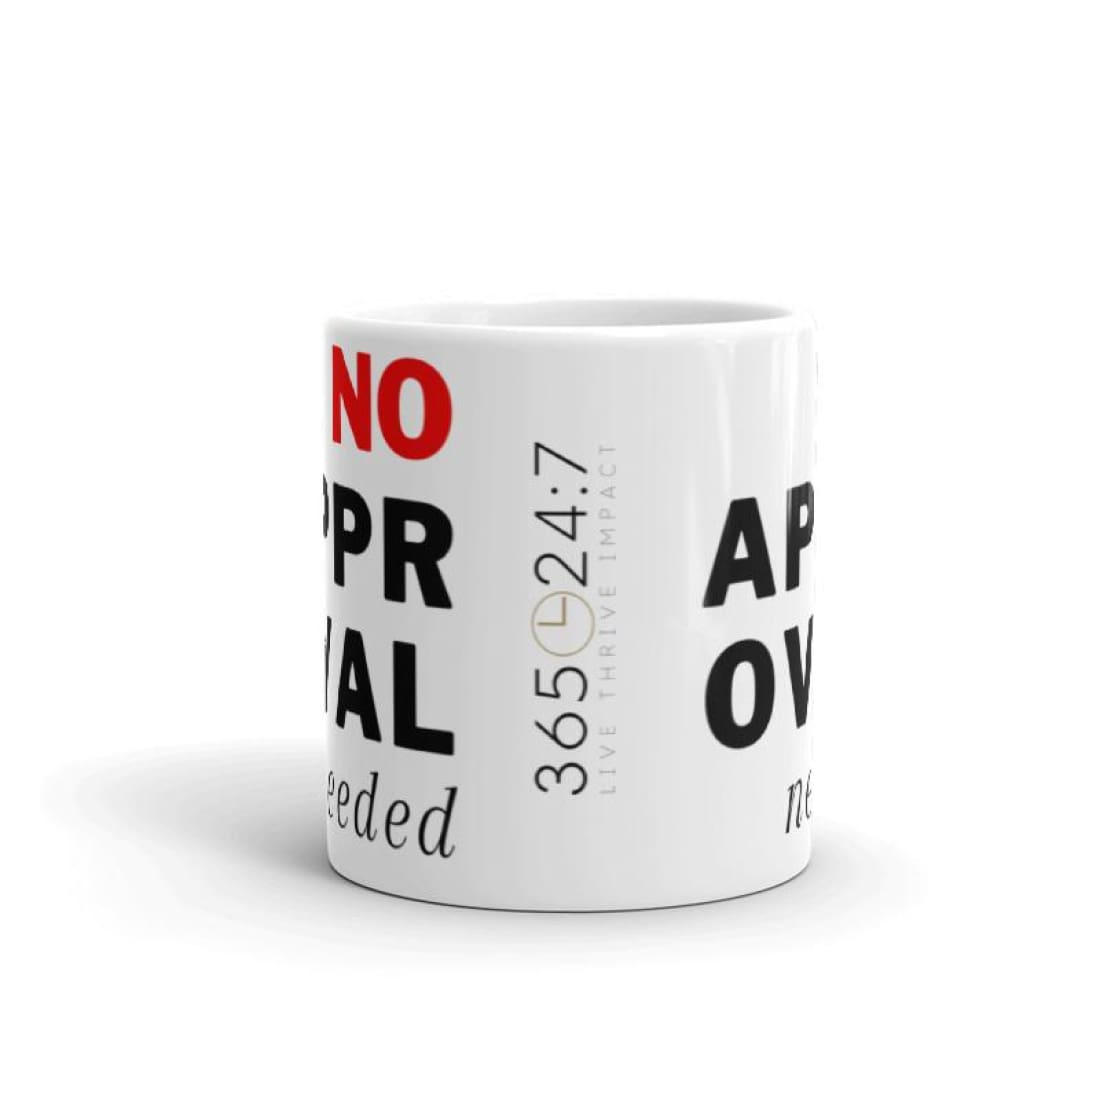 No Approval Needed Coffee Mug - Coffee Mug